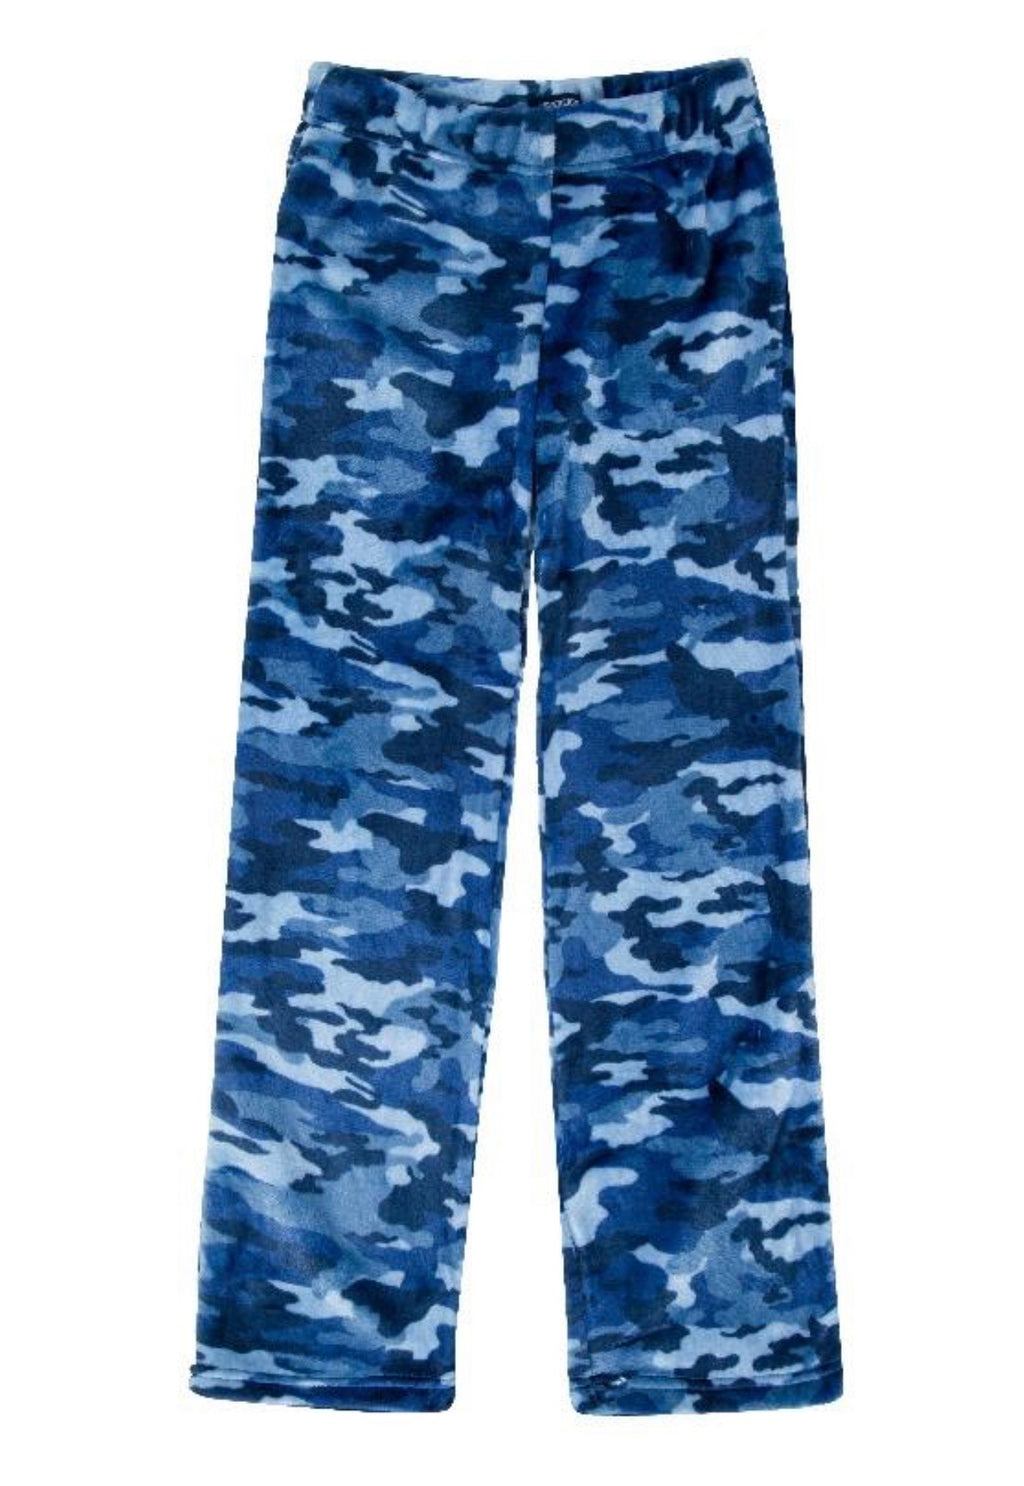 Navy Camo Lounge Pants